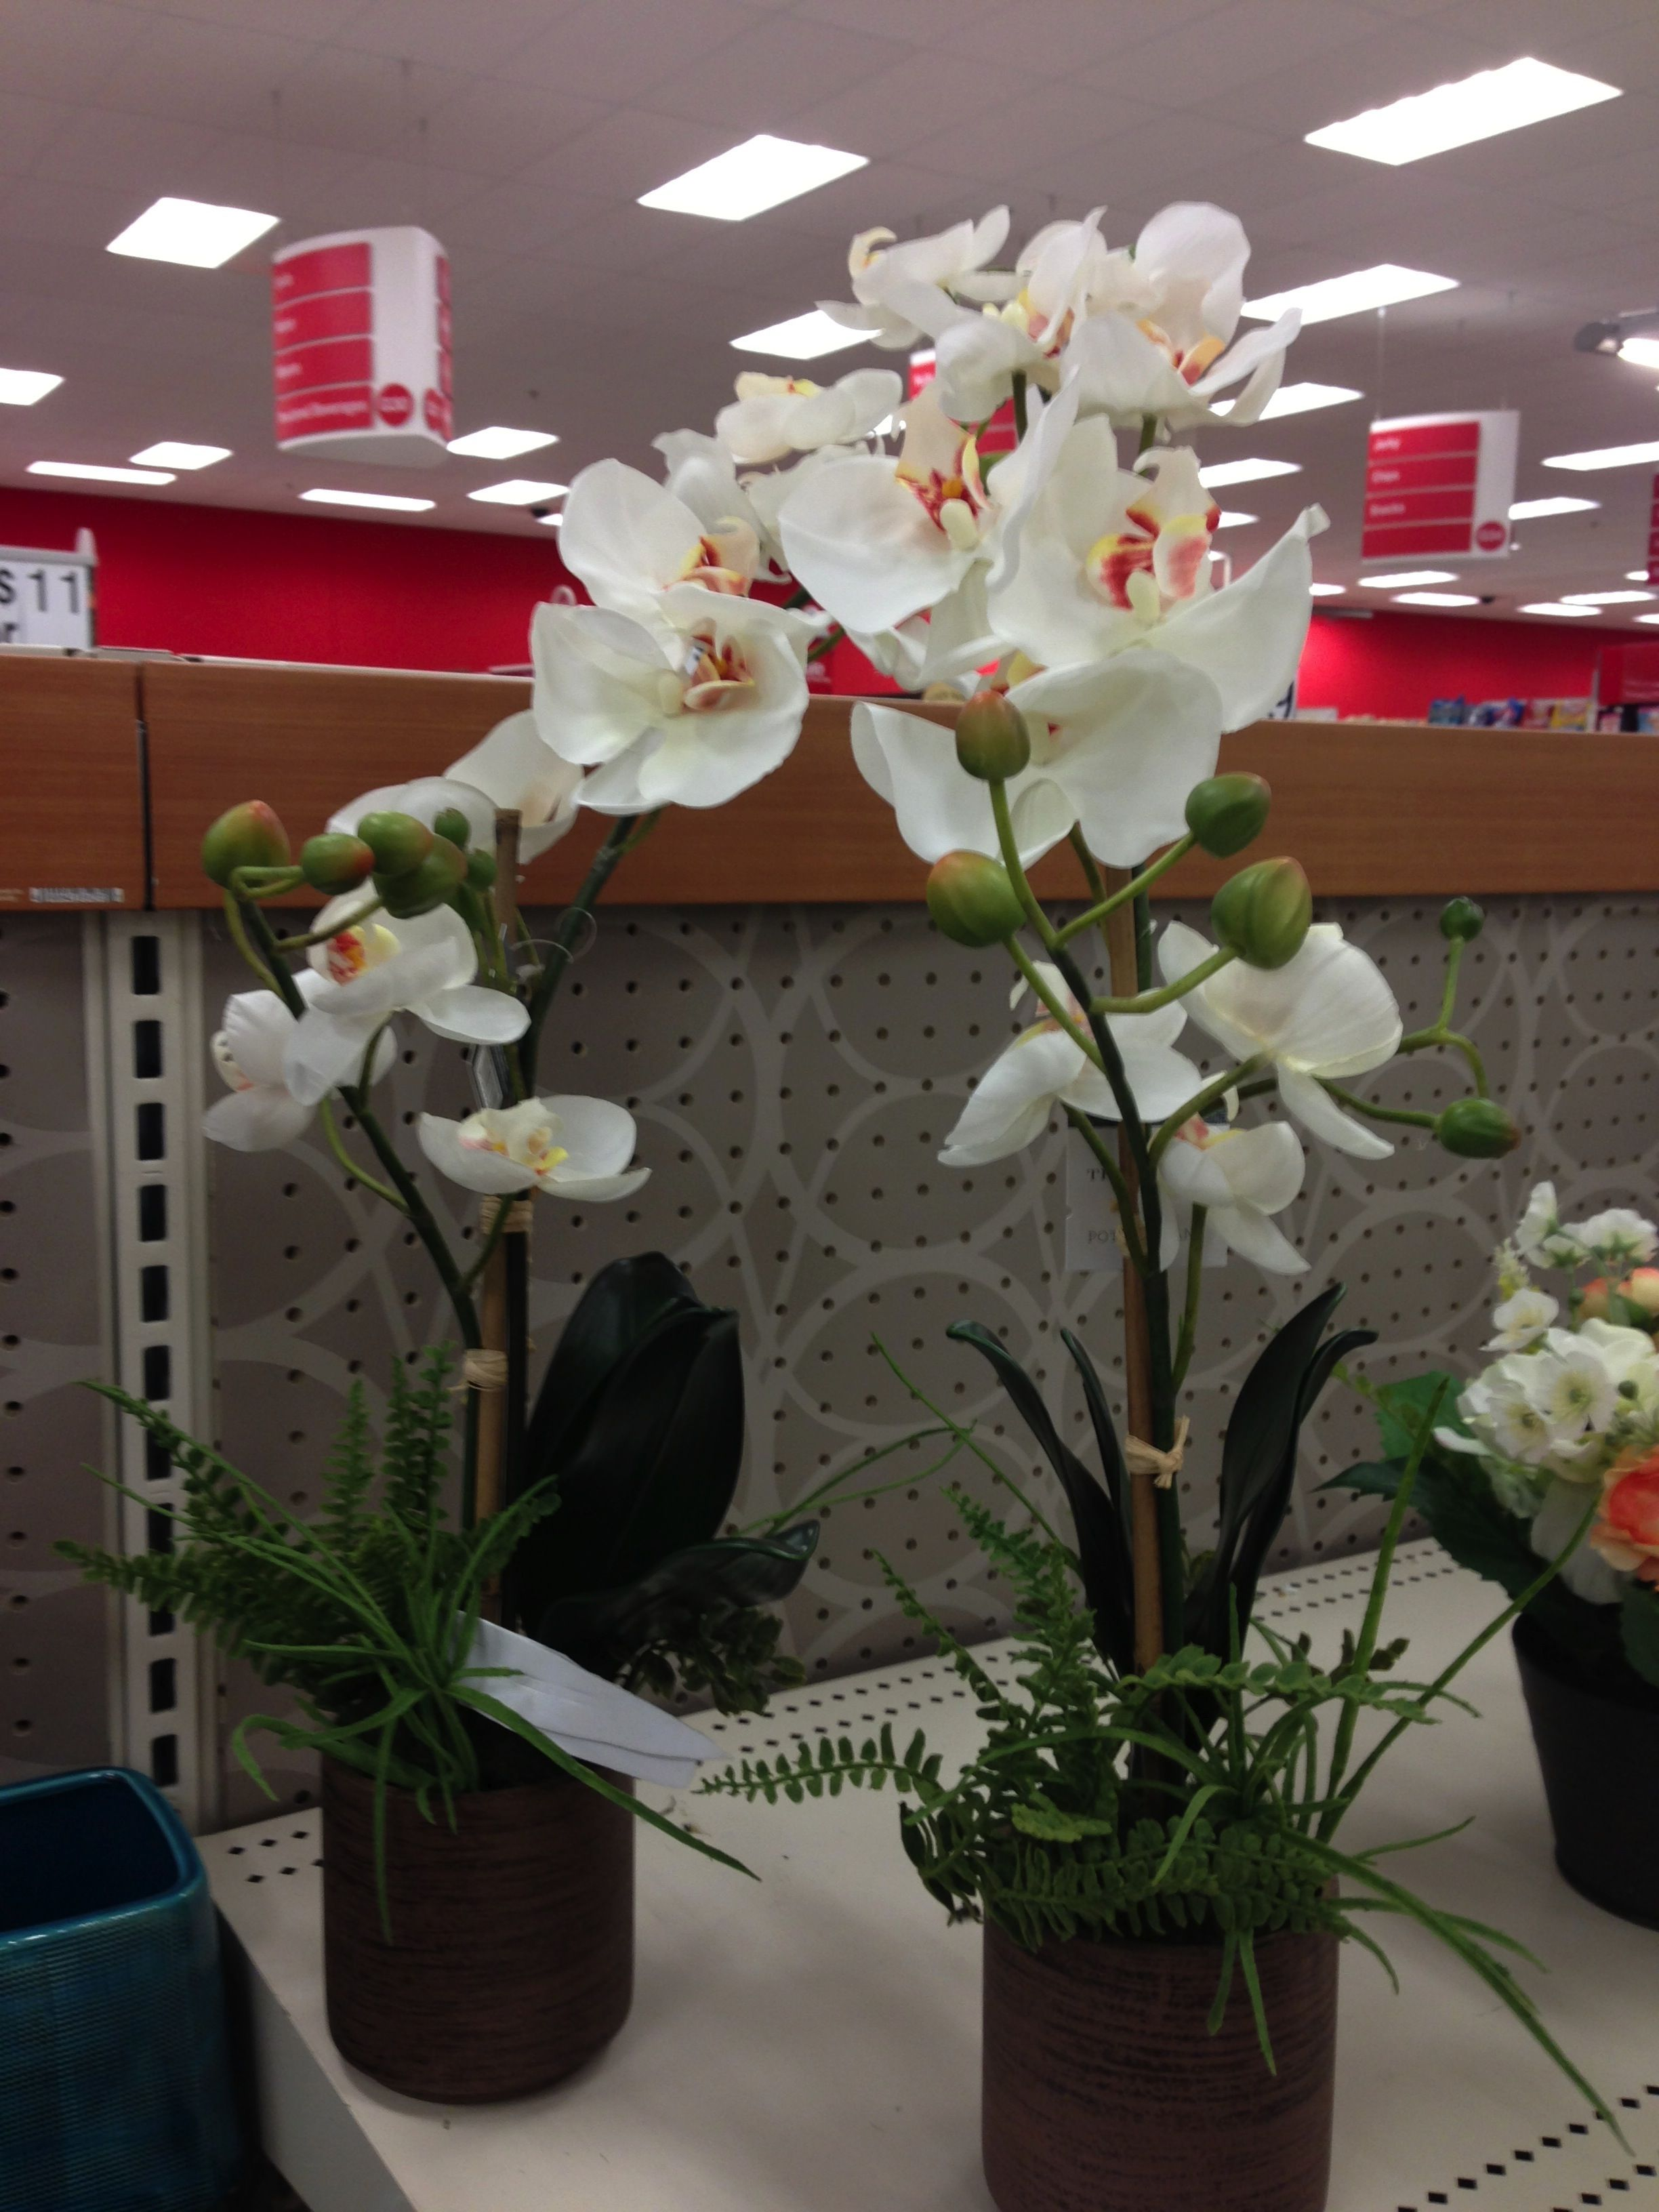 My Future Living Room Decor They Are Fake Orchids That I Found At Target D Flower Arrangements Orchids Living Room Decor